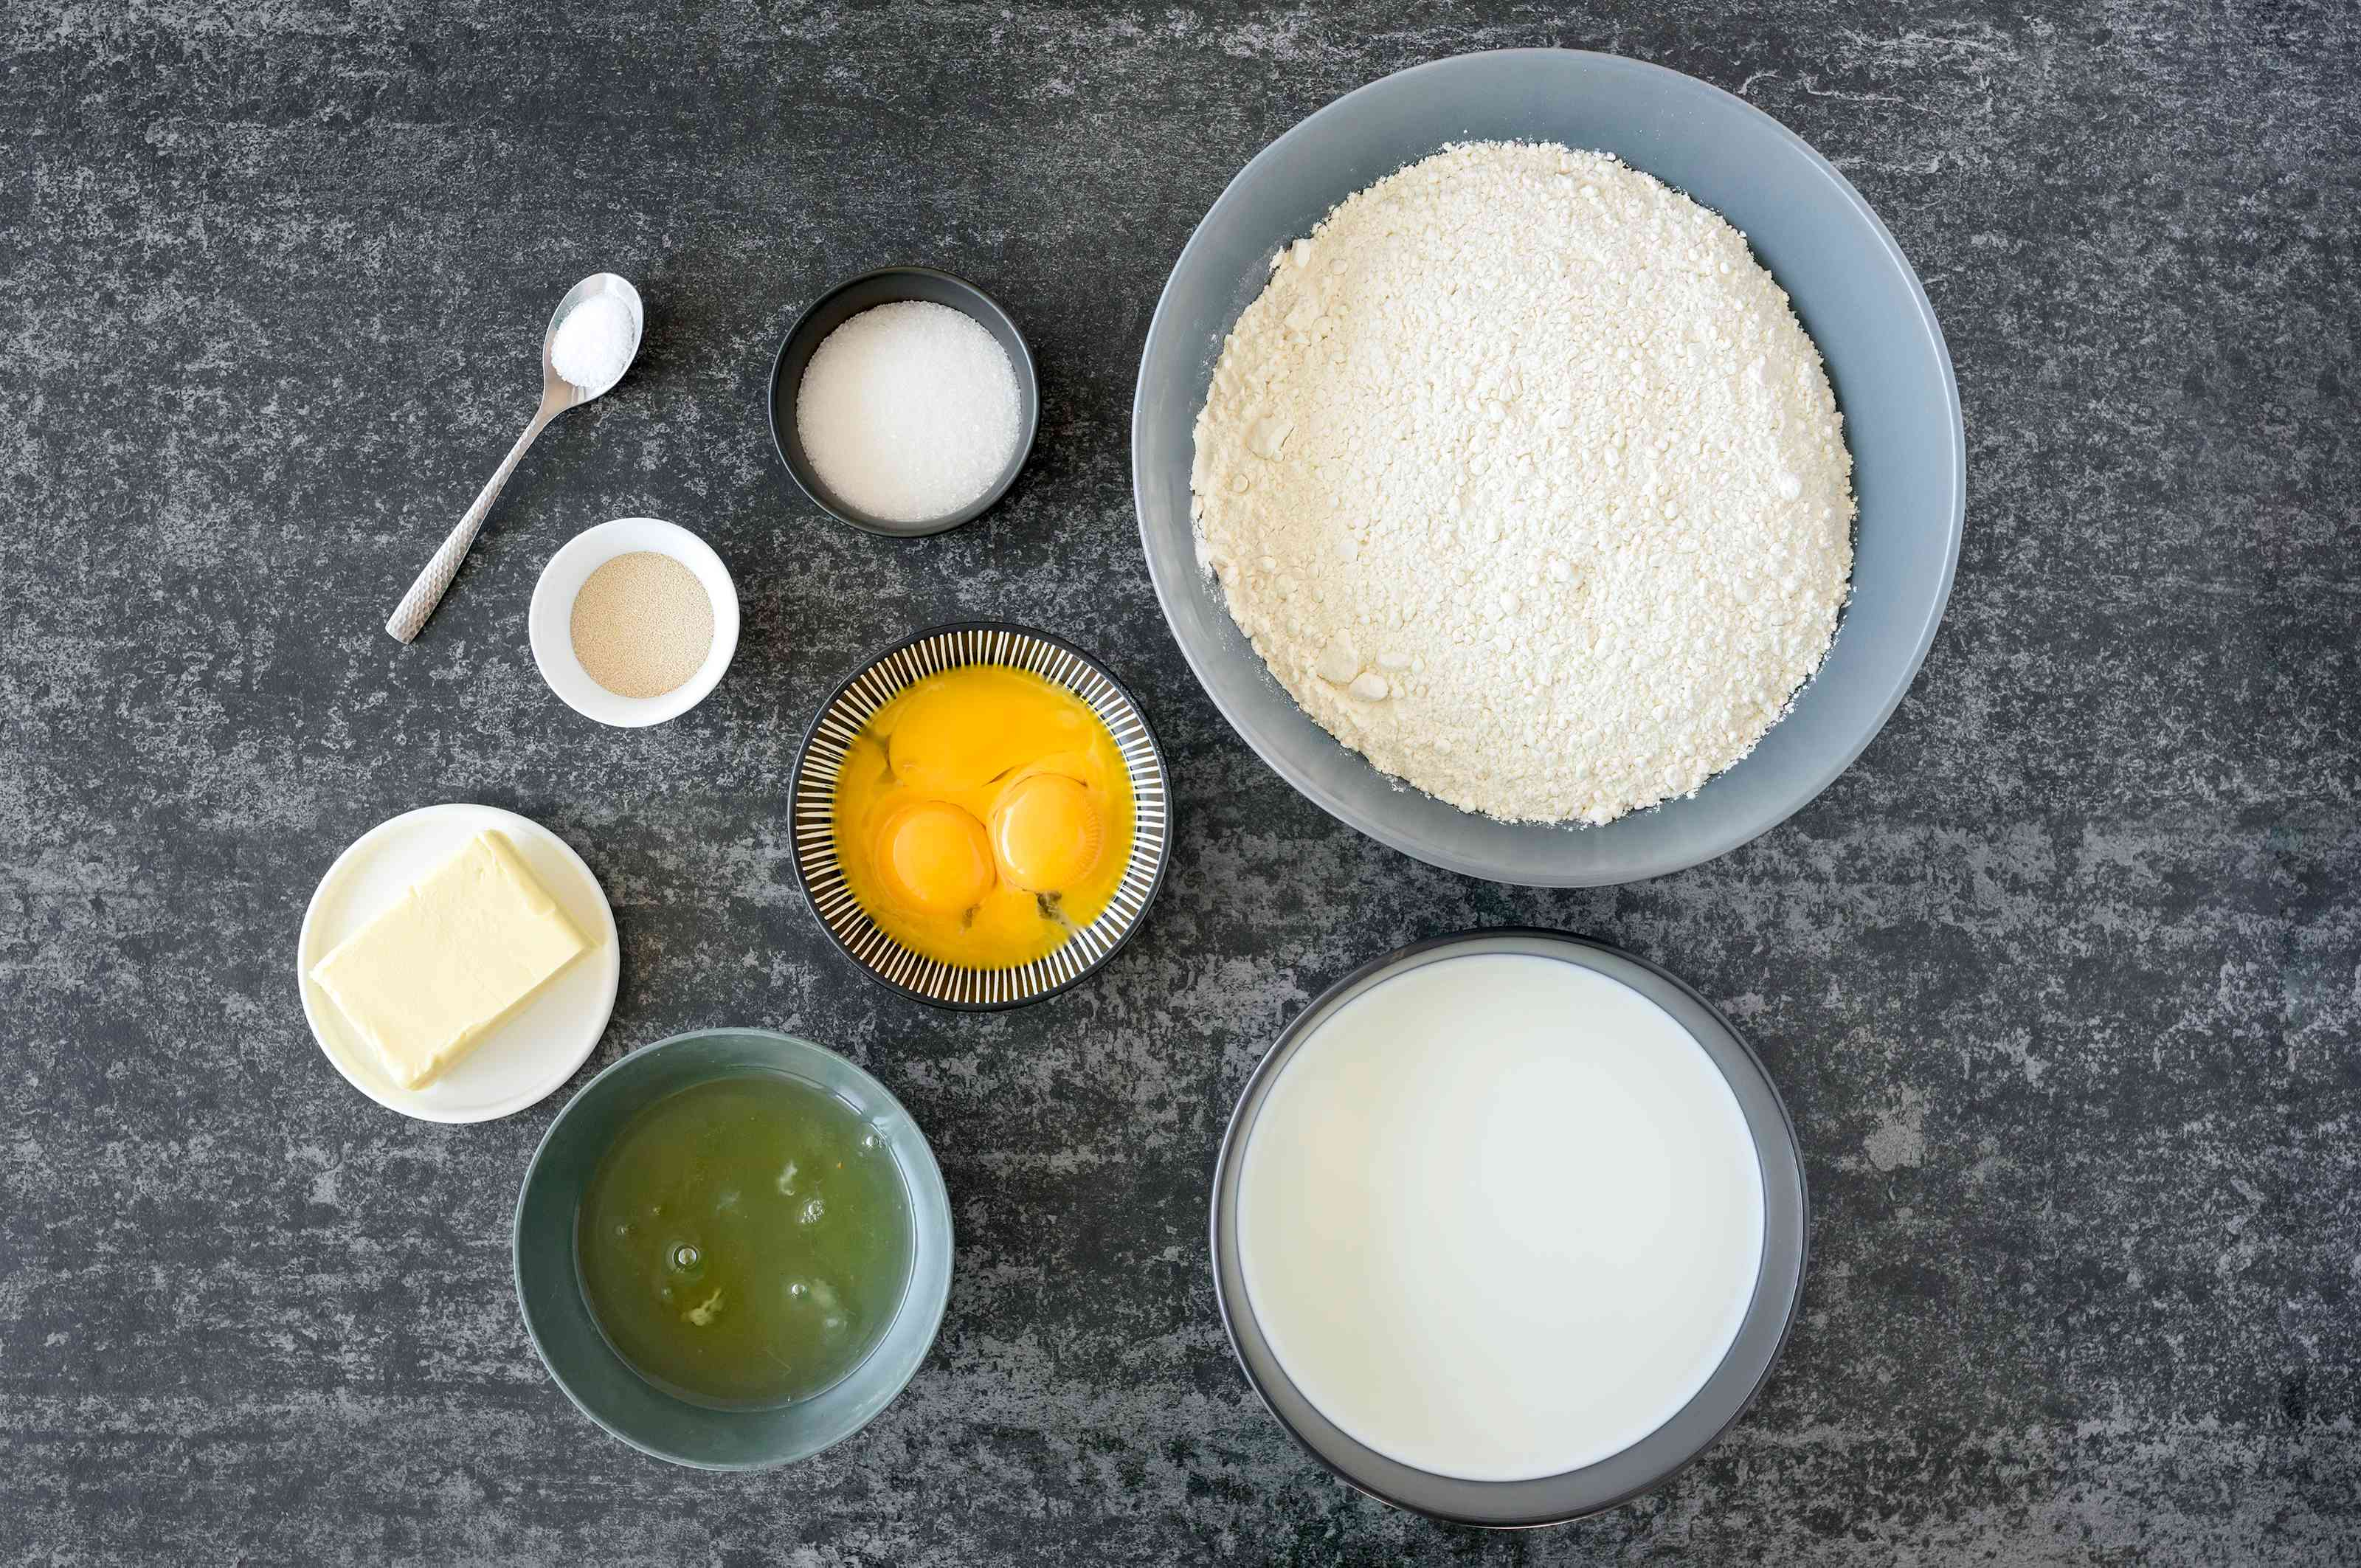 Ingredients for bread dough